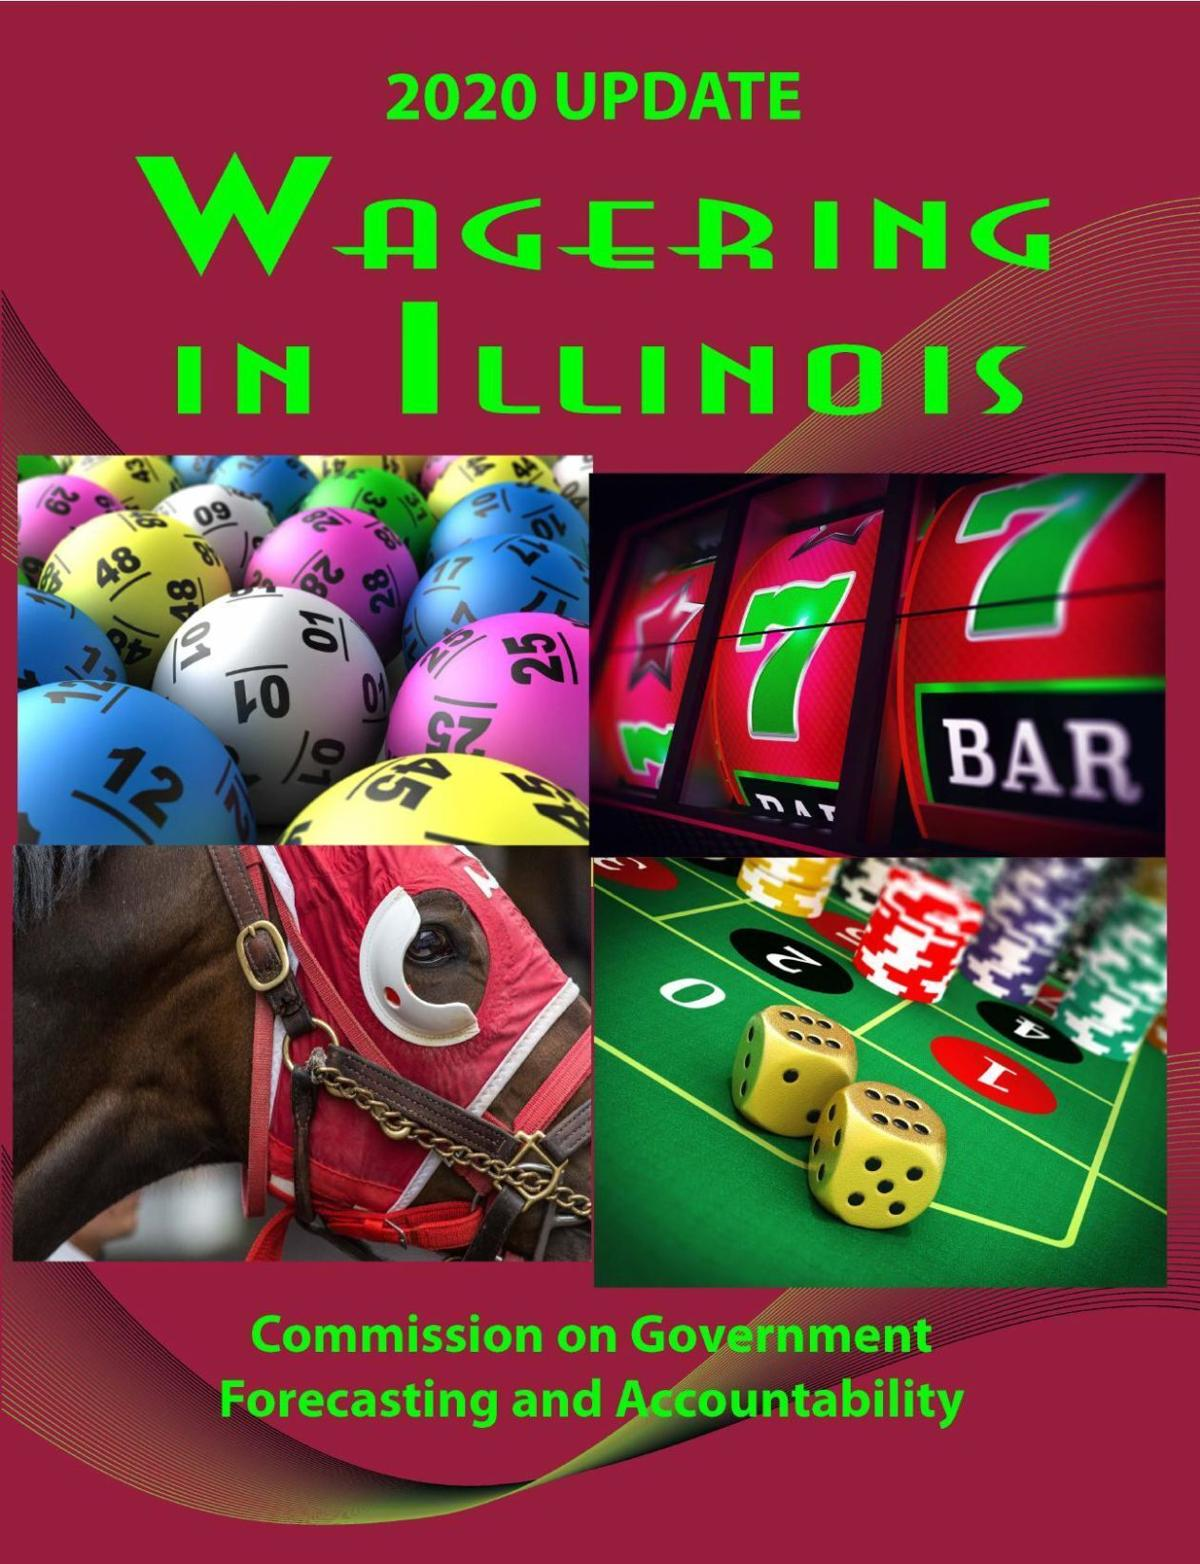 2020 wagering in Illinois report